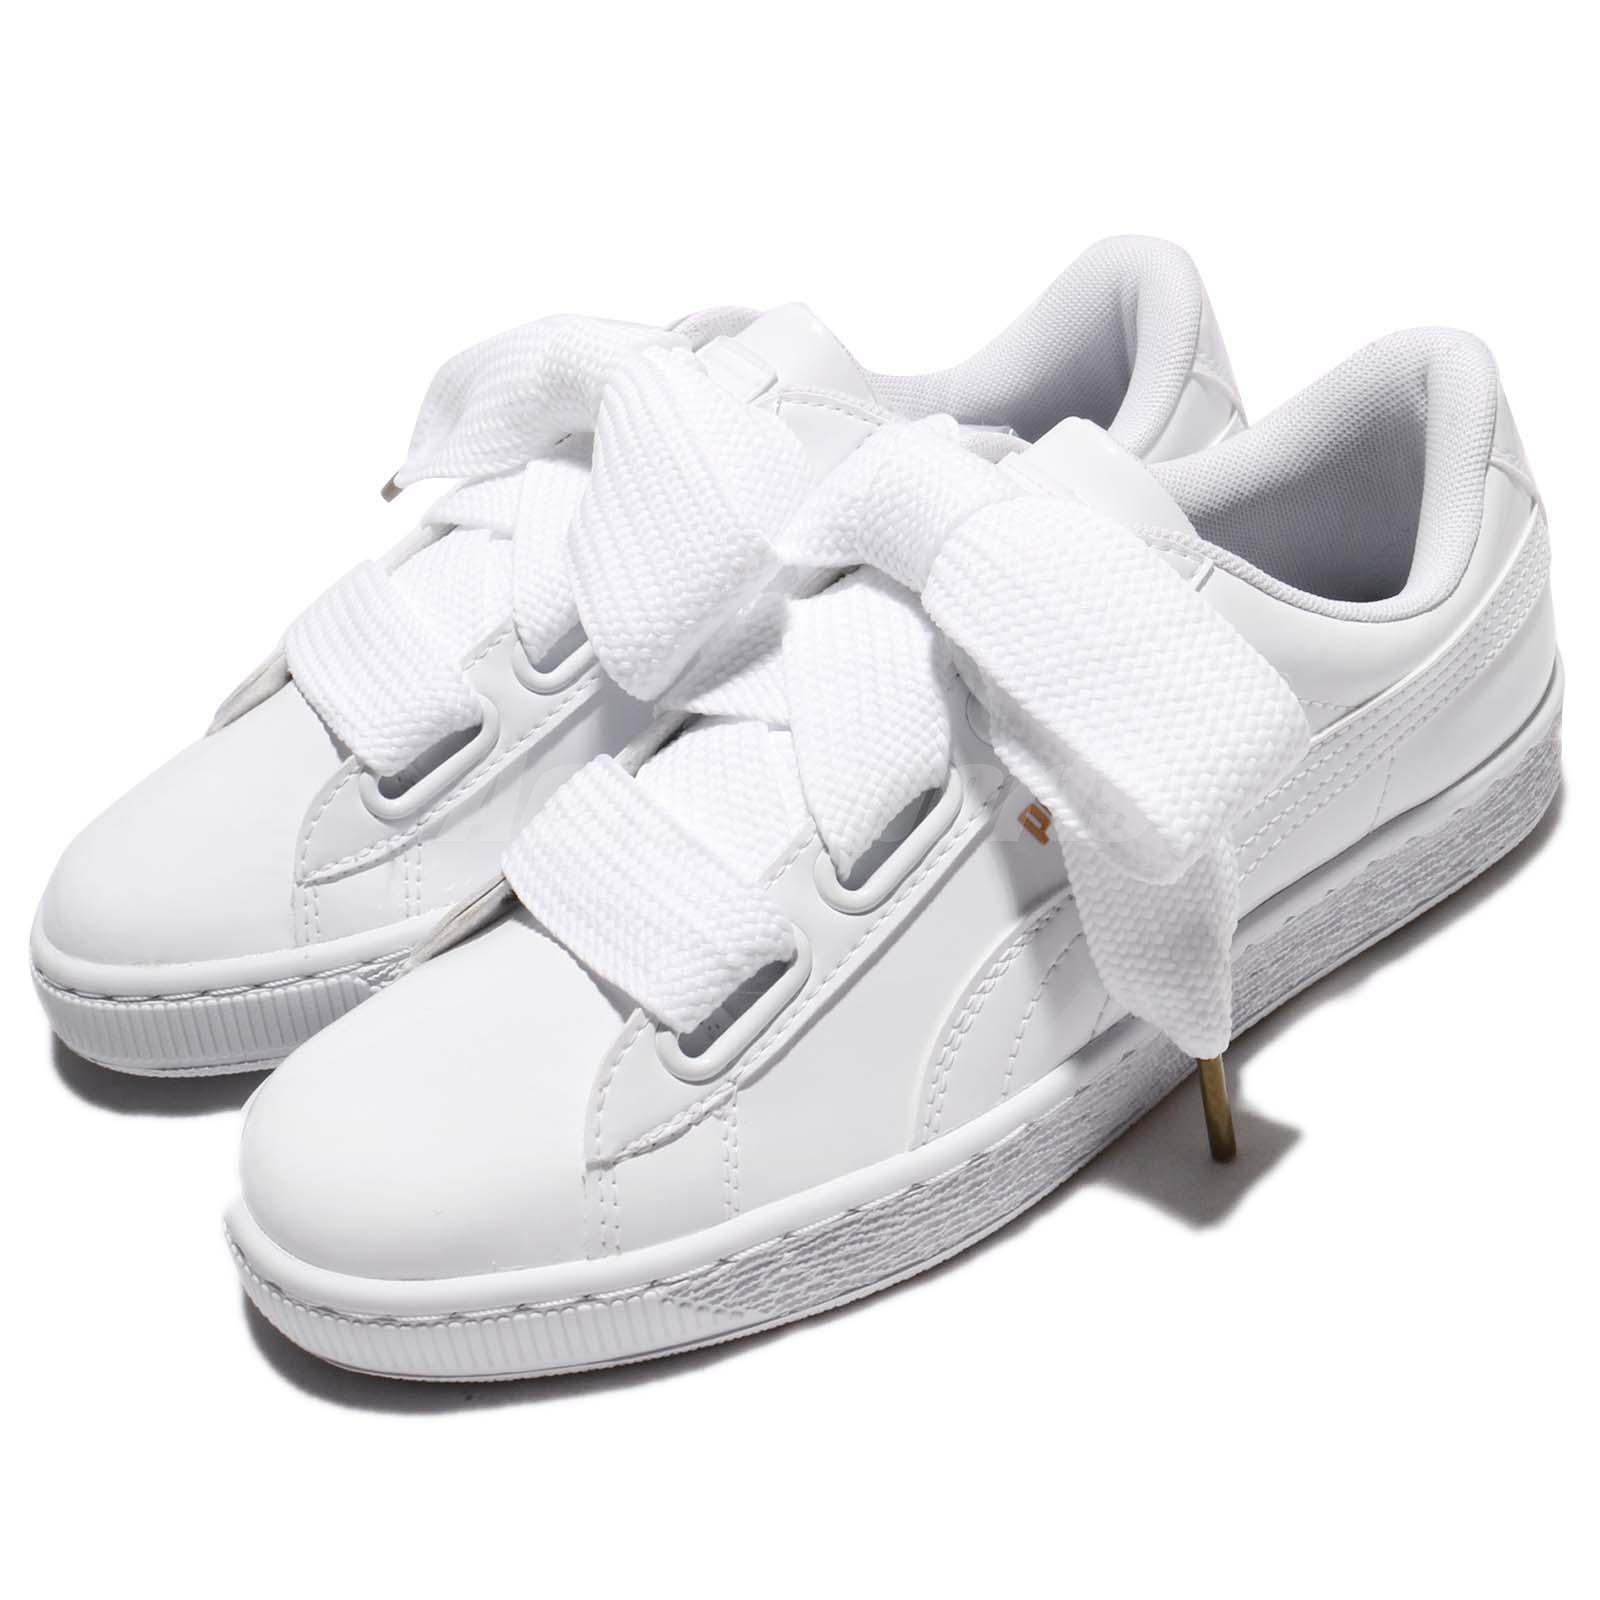 premium selection abcee b4589 Details about Puma Basket Heart Patent Wns Leather White Women Shoes  Sneakers 363073-02